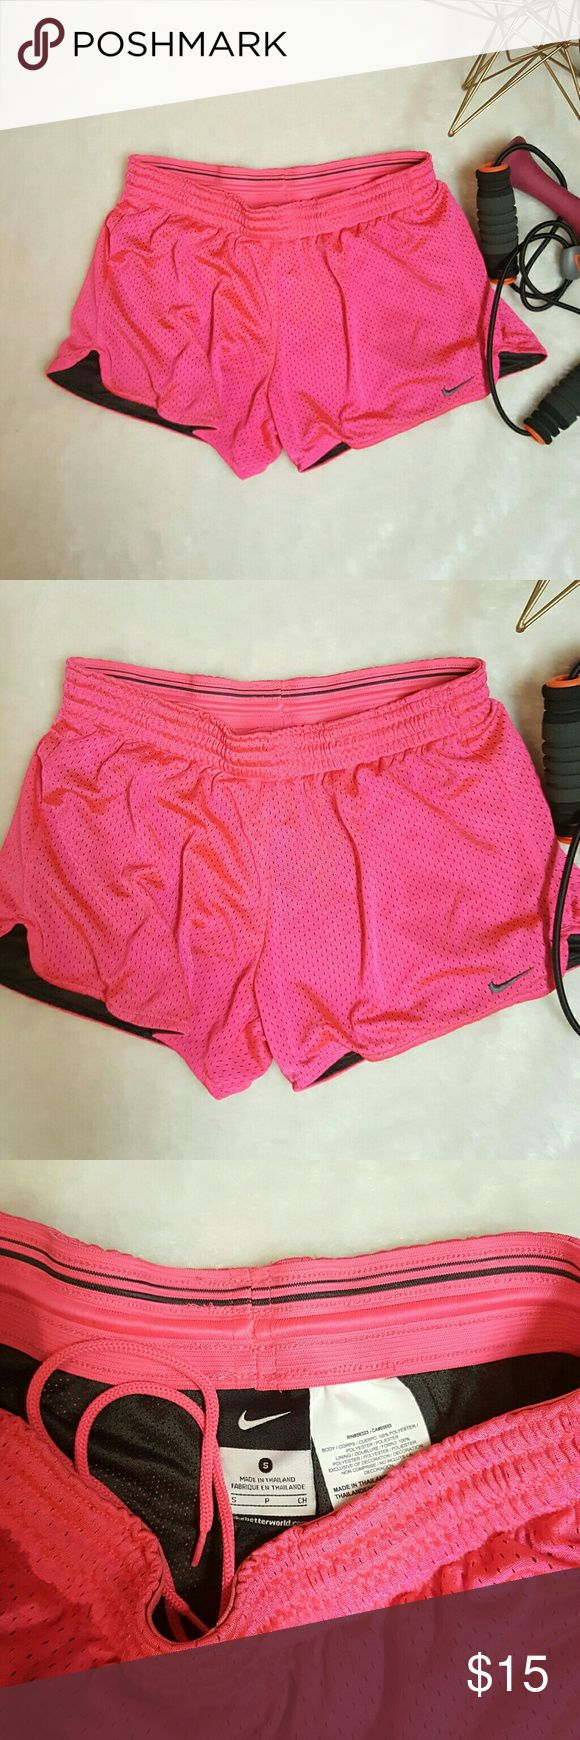 Hot Pink Nike Running Jogging Shorts Size Small Cute hot pink Nike shorts with drawstring. Size: small Color: hot pink with black lining  Gently used. Great condition!  Offers always welcomed! Nike Shorts